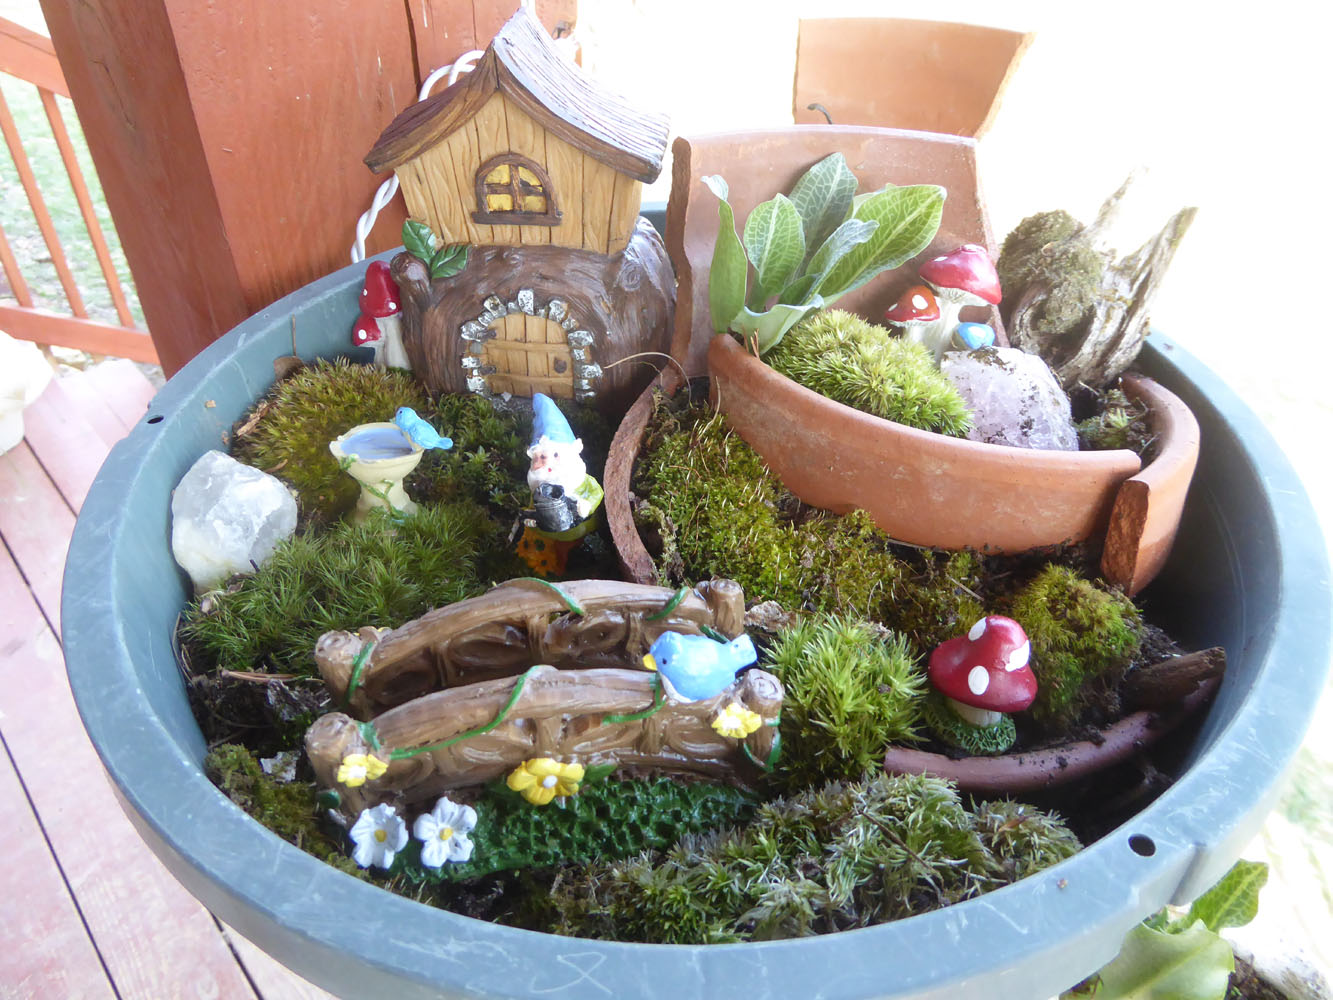 The First One We Made I Just Used An Old Pot I Already Had. Itu0027s Actually A  Recycled Fairy Garden, That We Created Last Year. We Collected New Moss And  ...